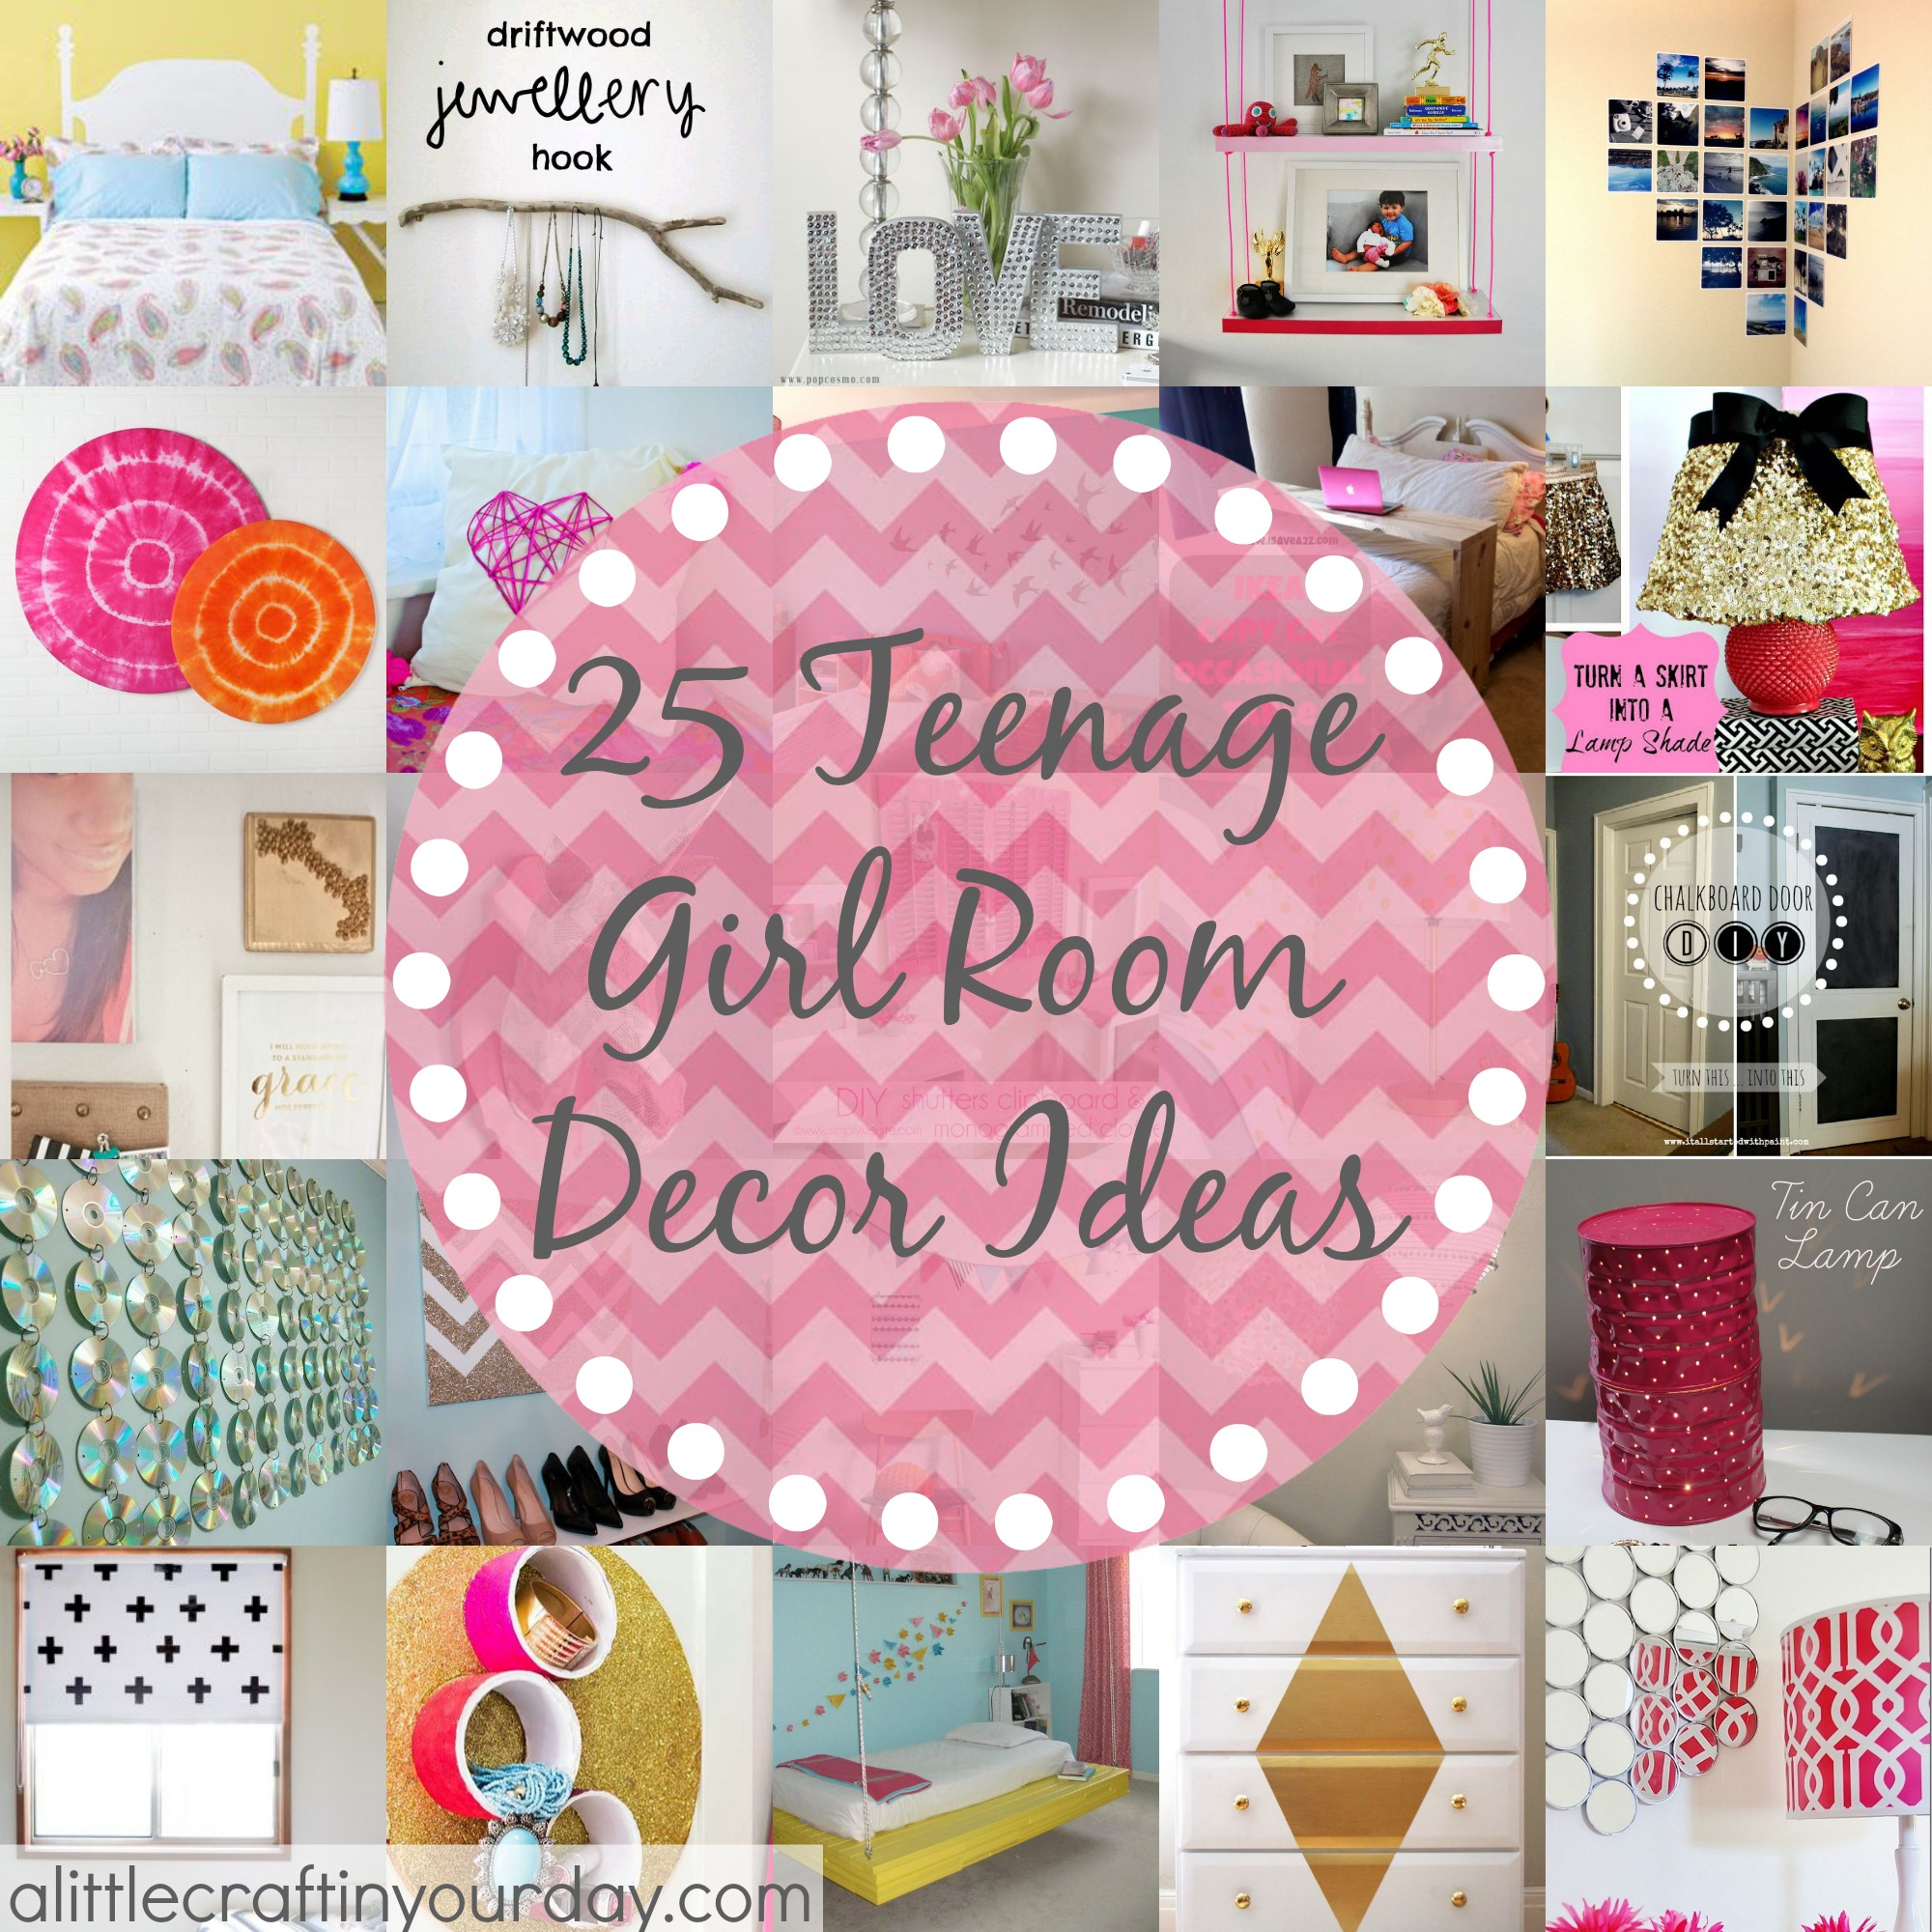 Easy diy projects for teenage girls rooms - 4 30 25 More Teenage Girl Room Decor Ideas